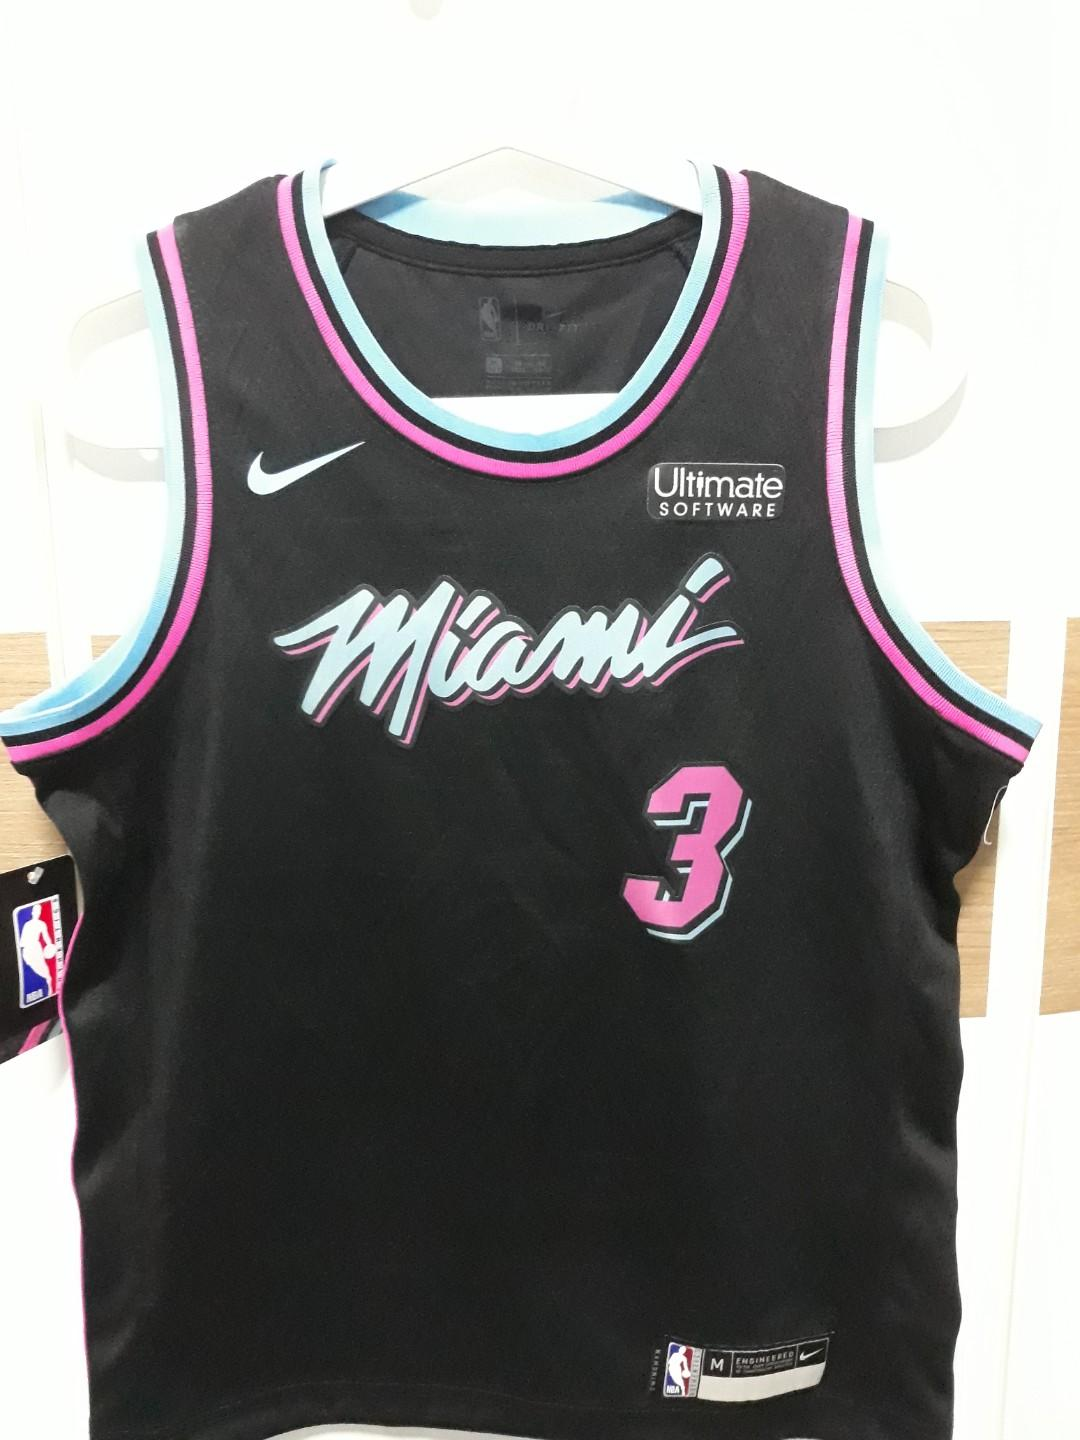 free shipping f5332 f7e4c Miami Heat Vice Night Swingman Jersey. Dwyane Wade 3, Sports ...